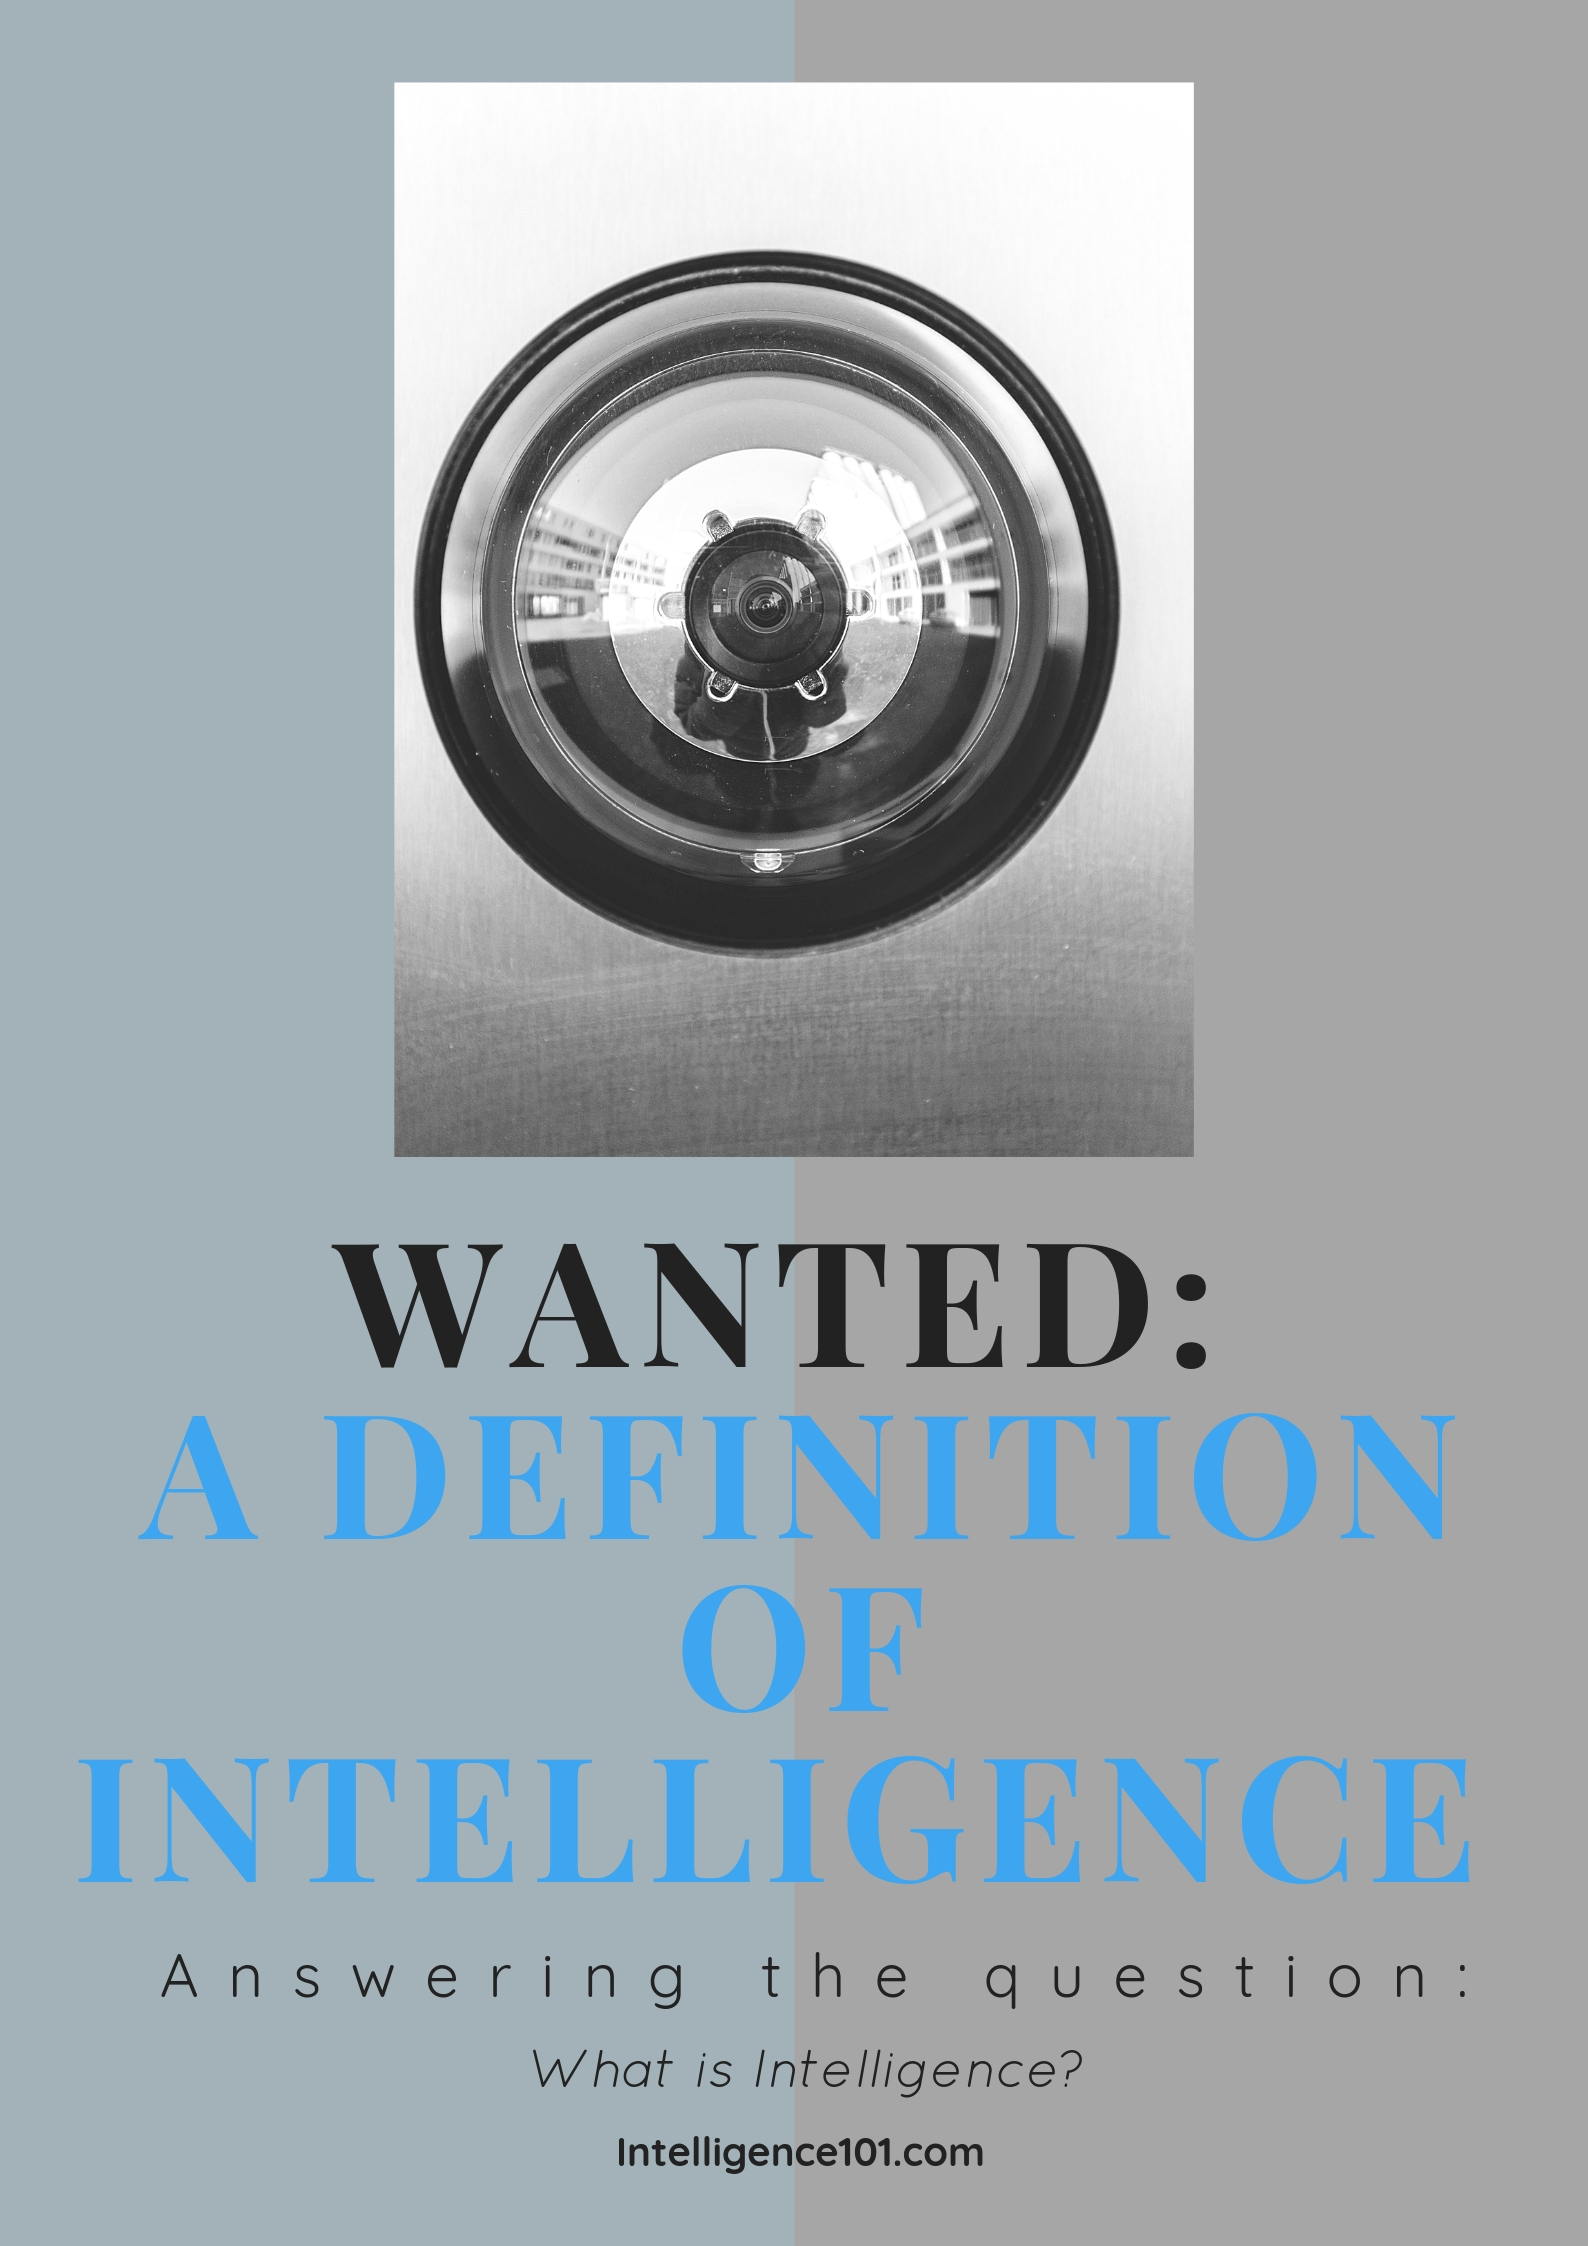 Wanted: A Definition of Intelligence